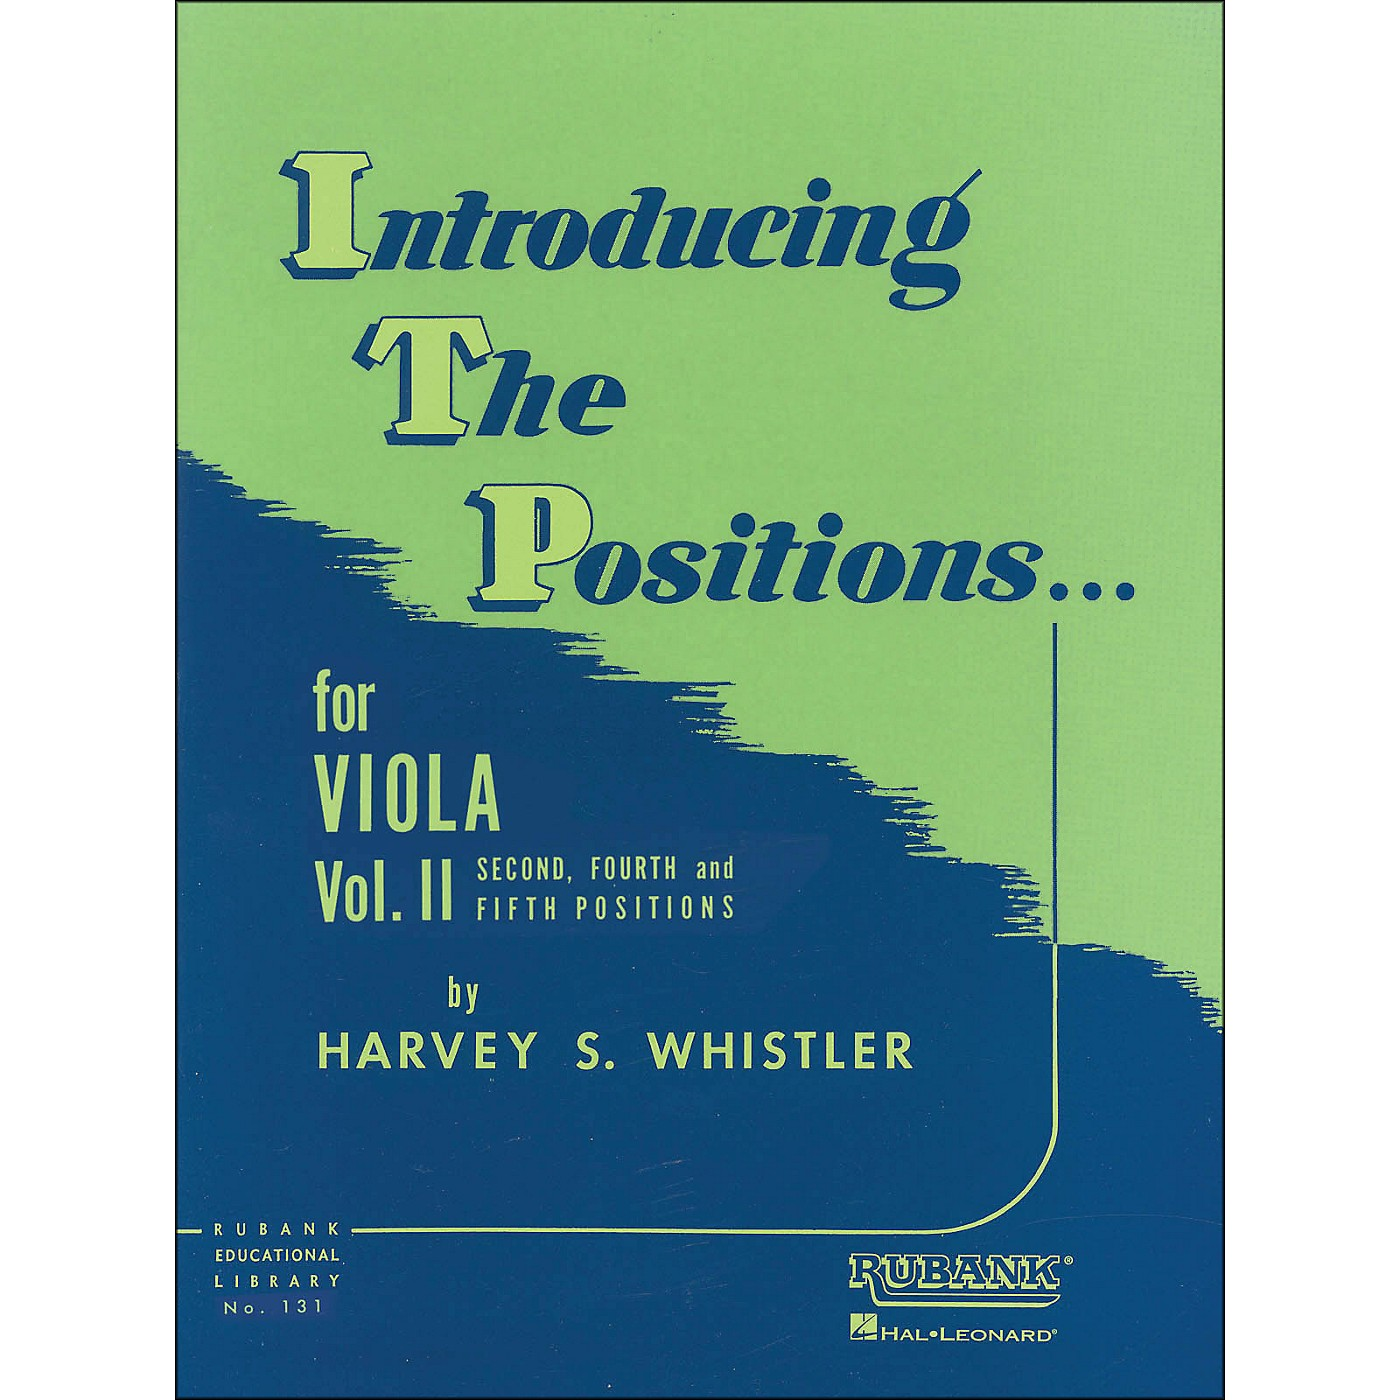 Hal Leonard Introducing The Positions for Viola Vol 2 2nd, 4th & 5th Positions thumbnail